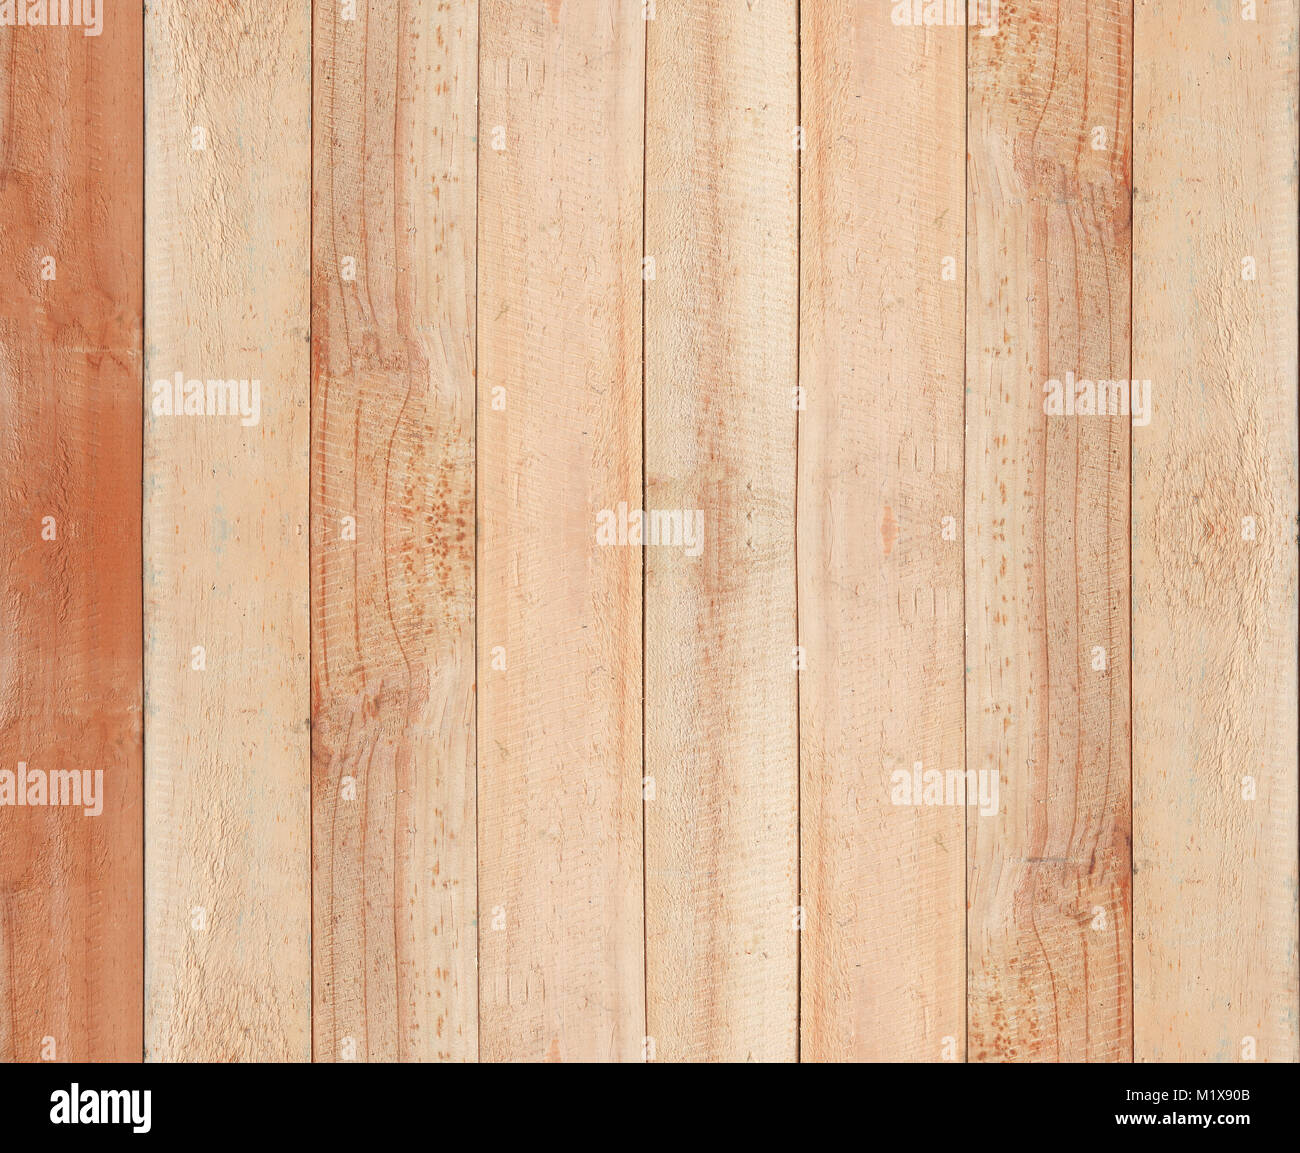 Close up brown wooden table texture background - Stock Image